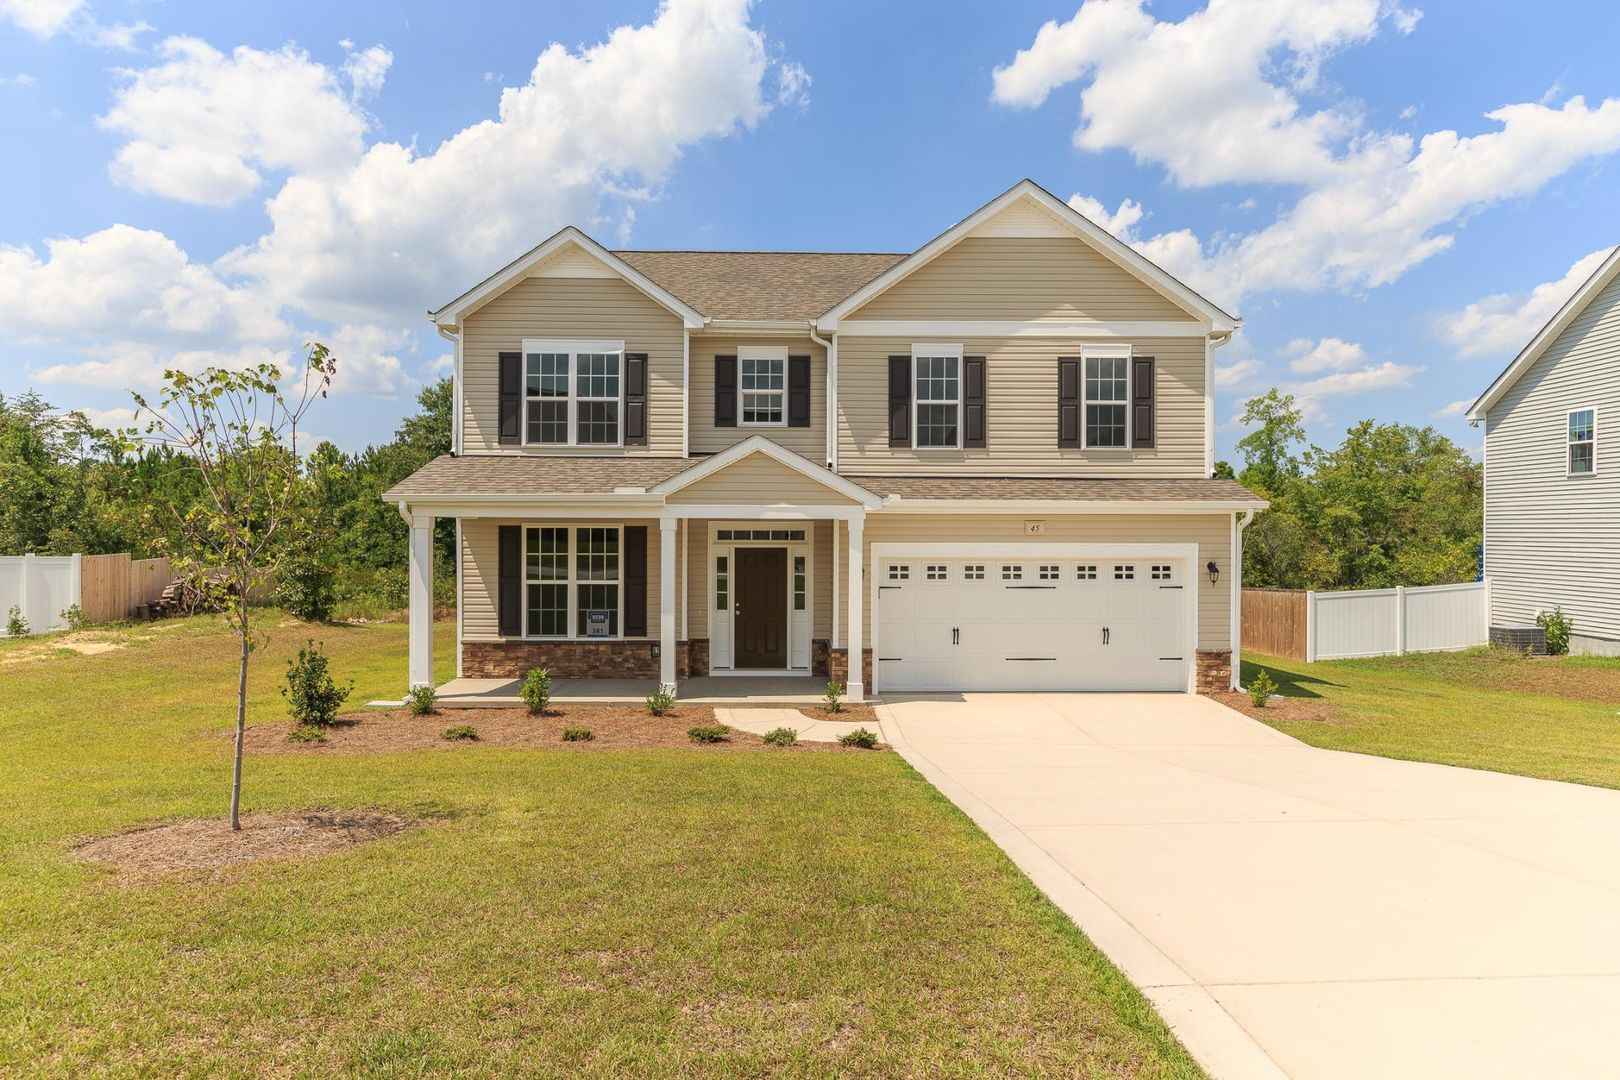 Homes For Rent In Fayetteville Nc